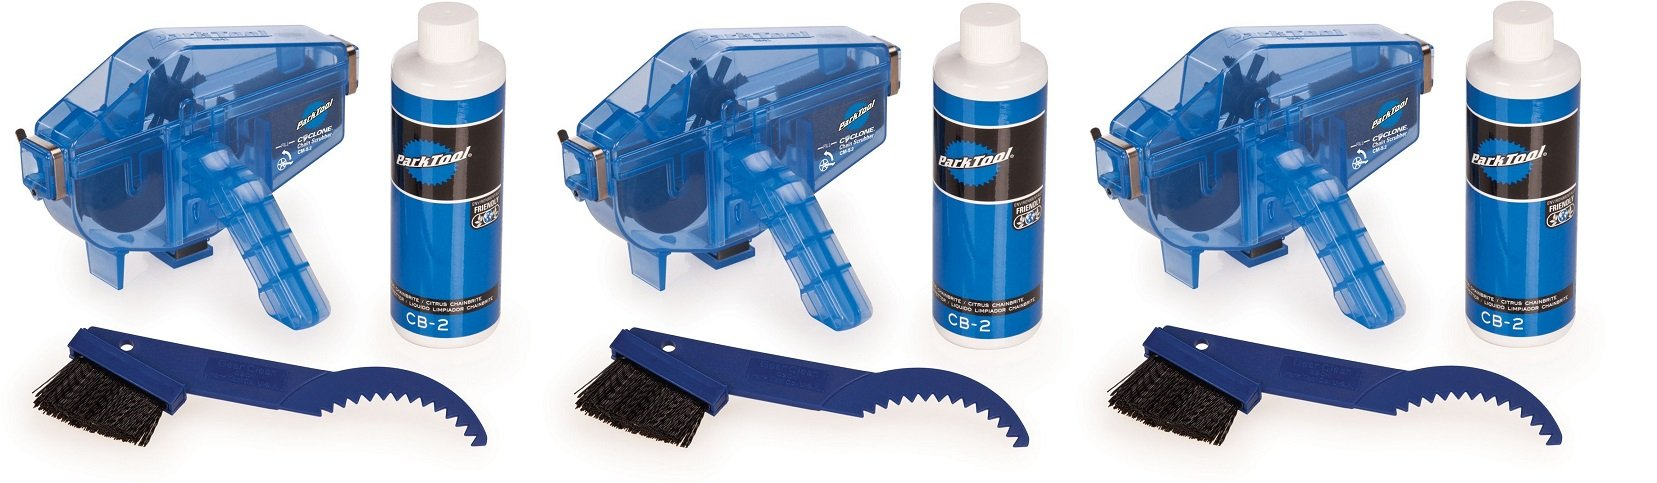 Park Tool CG-2.3 Chain Gang Chain Cleaning System Blue, One Size (3 Kits)